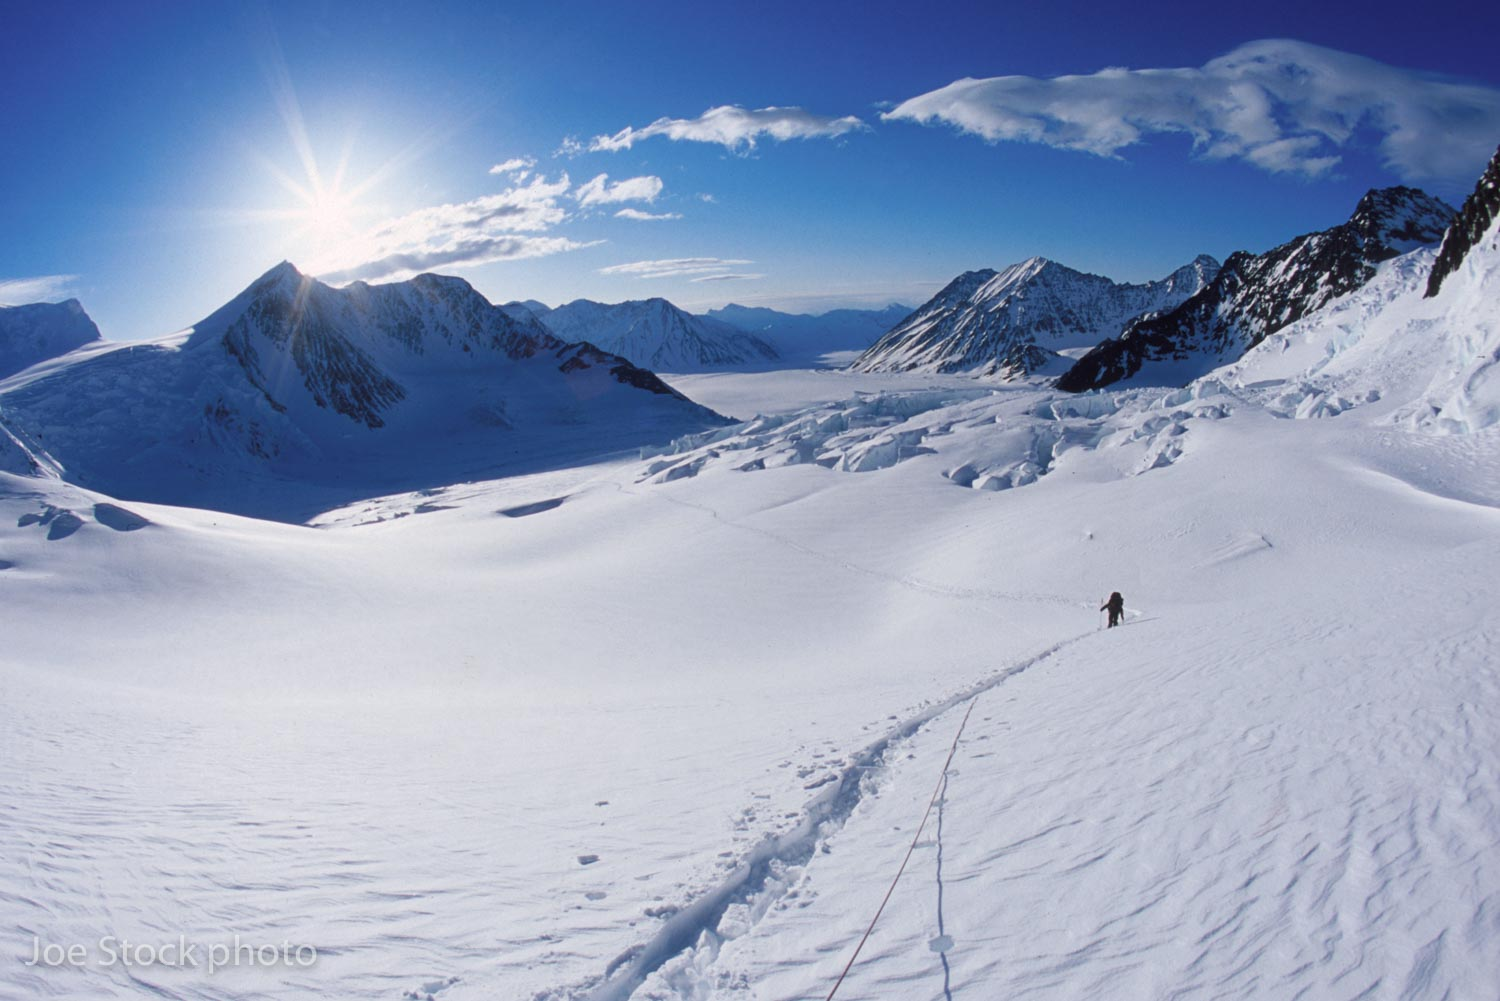 Skinning up the east branch of the Matanuska Glacier from the Scandinavian Peaks hut after the storm. From the Matanuska Glacier to Valdez took us five big days.